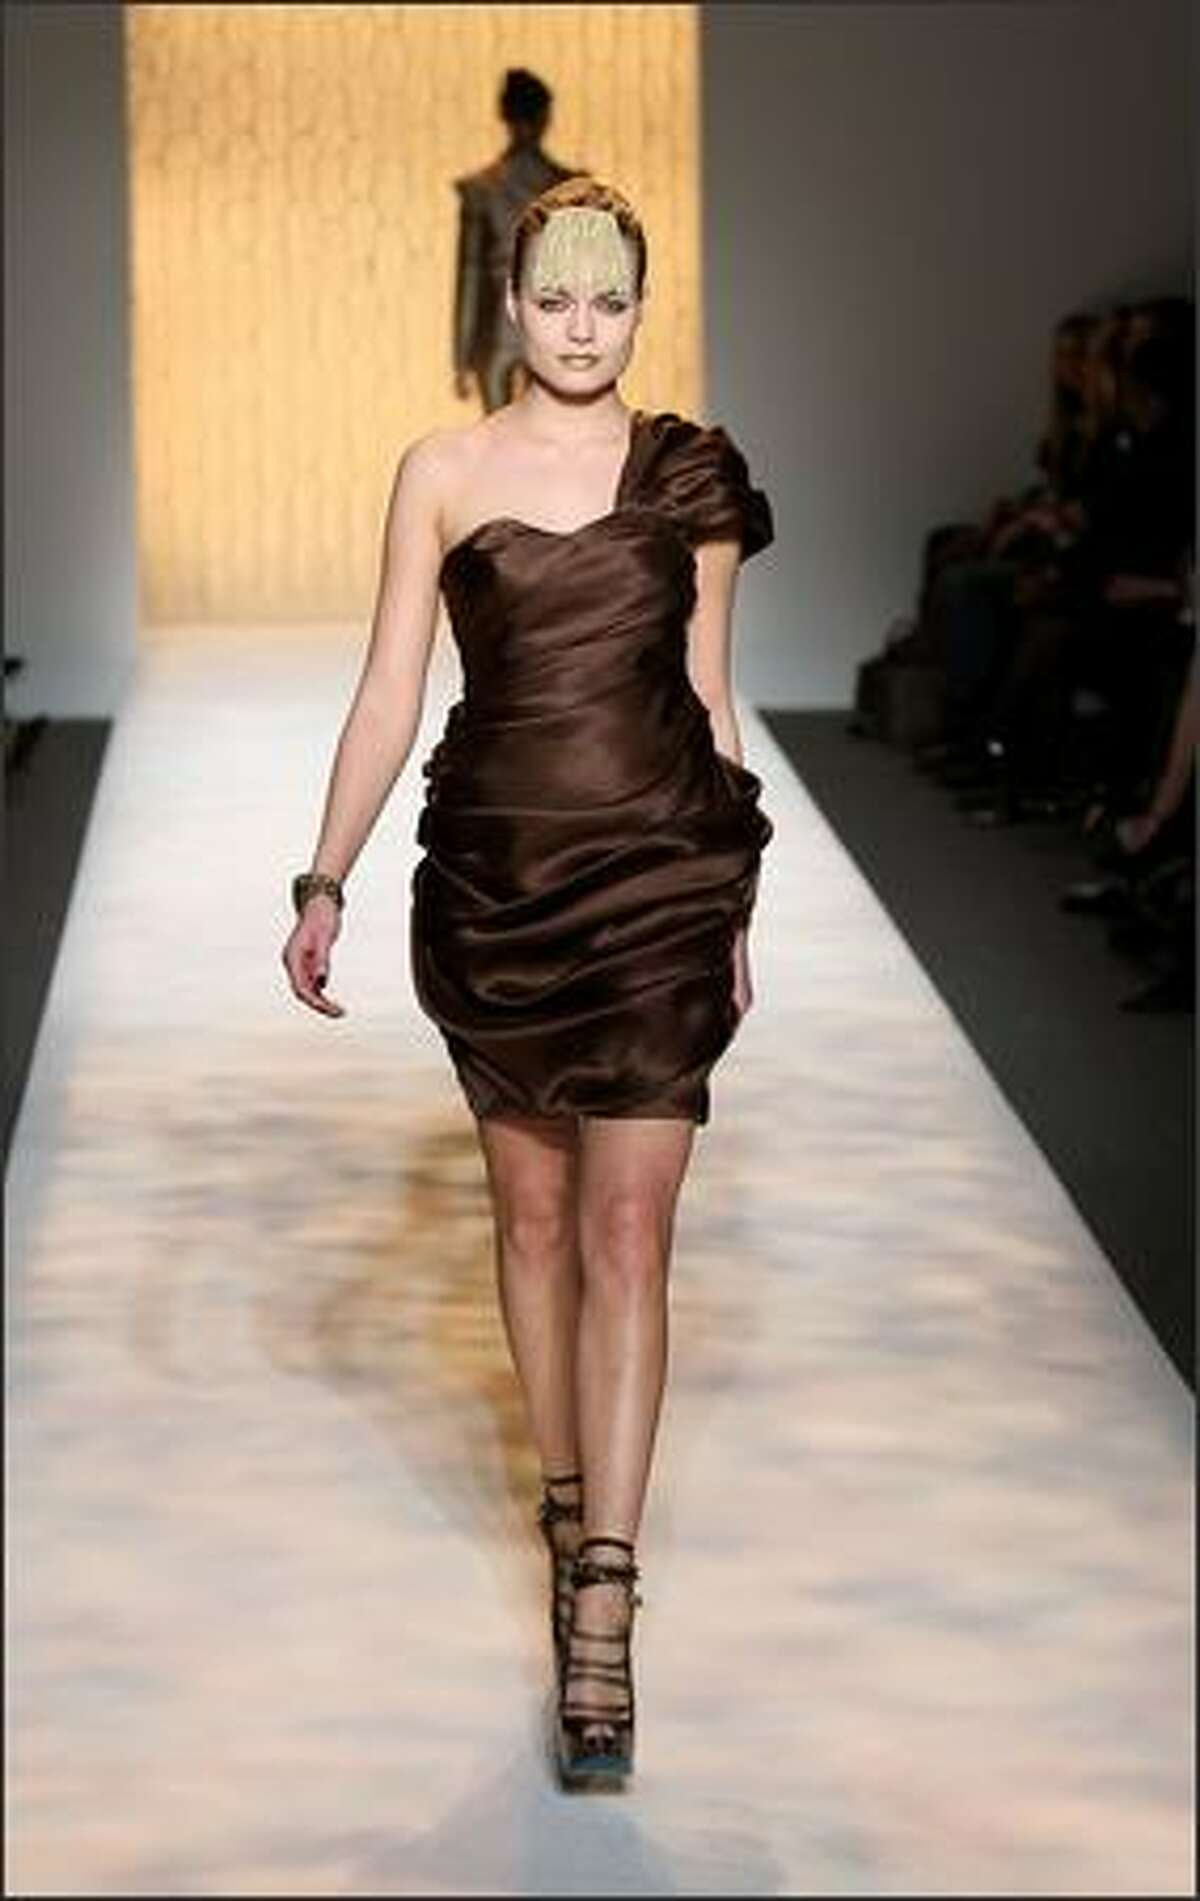 A model walks the runway during the Christian Siriano Fall 2009 fashion show at Mercedes-Benz Fashion Week in New York, Thursday, Feb. 19, 2009.